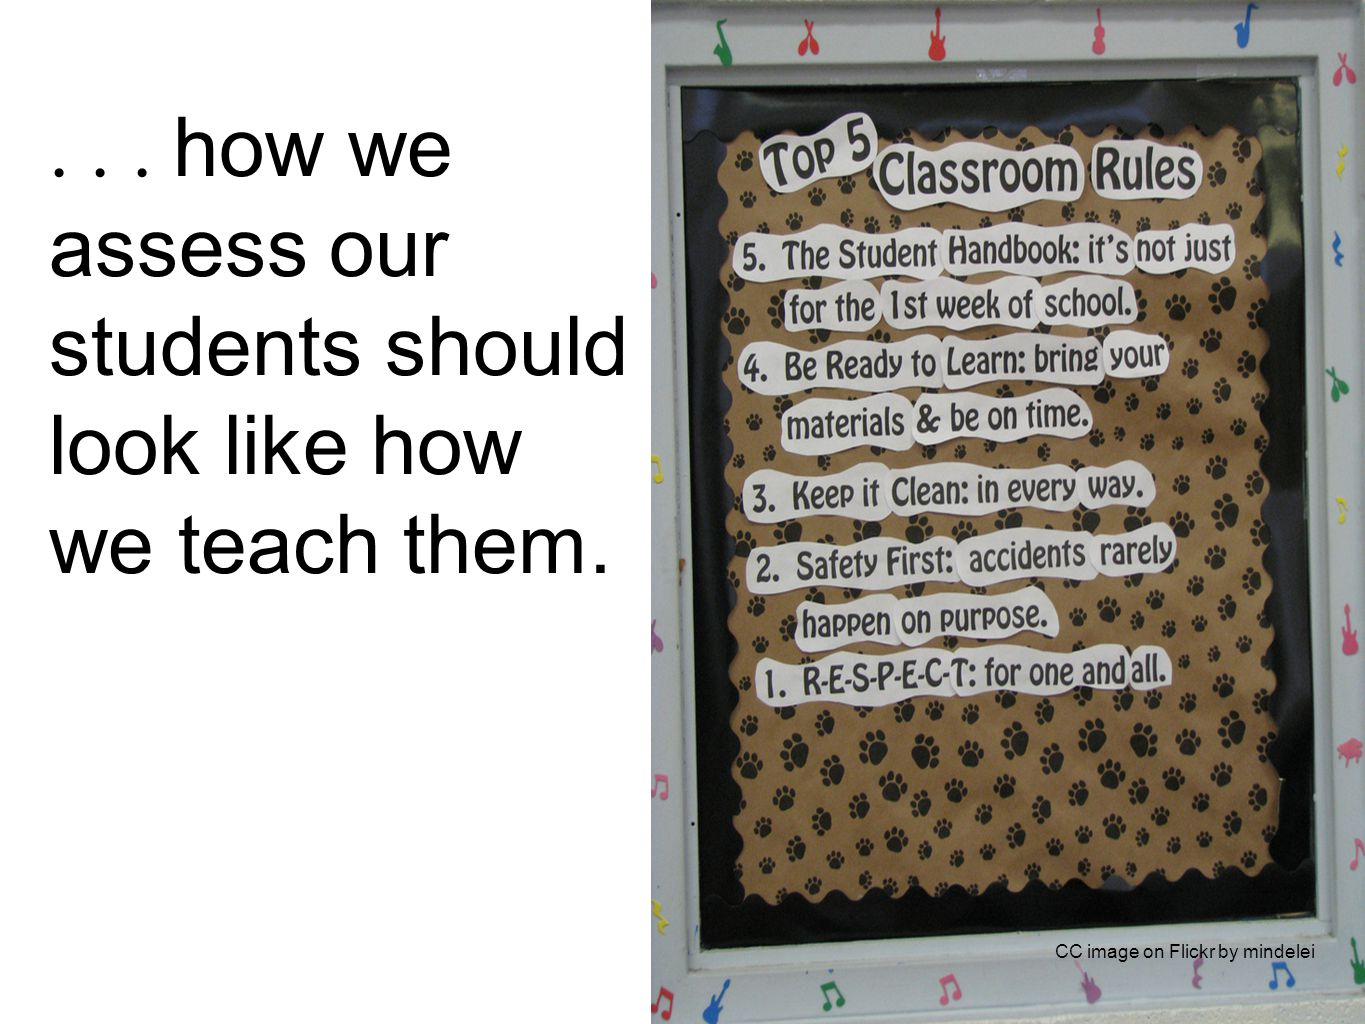 ... how we assess our students should look like how we teach them. CC image on Flickr by mindelei